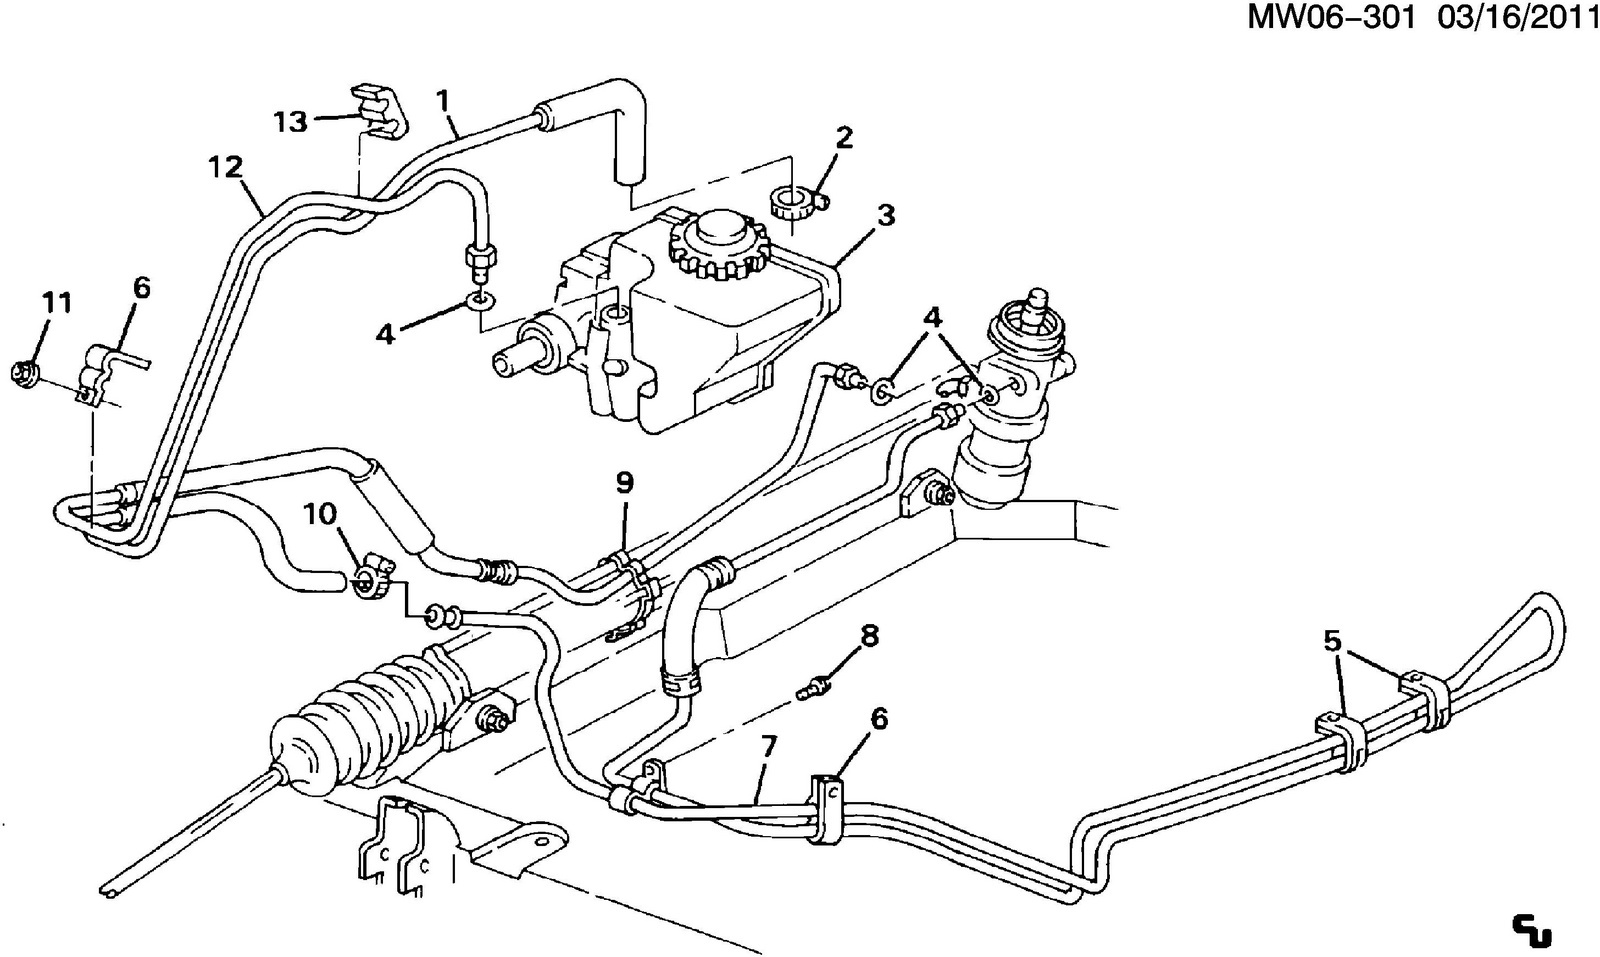 Buick Regal 1996 Buick Regal Repairing Or Installing A Ac  ressor By furthermore Dodge Dakota Thermostat Location furthermore T11514603 Rocker arm torque 3 4l in addition 1993 Lincoln Town Car Engine Diagram in addition 95 Buick Riviera Engine Diagram. on water pump location 1999 buick century